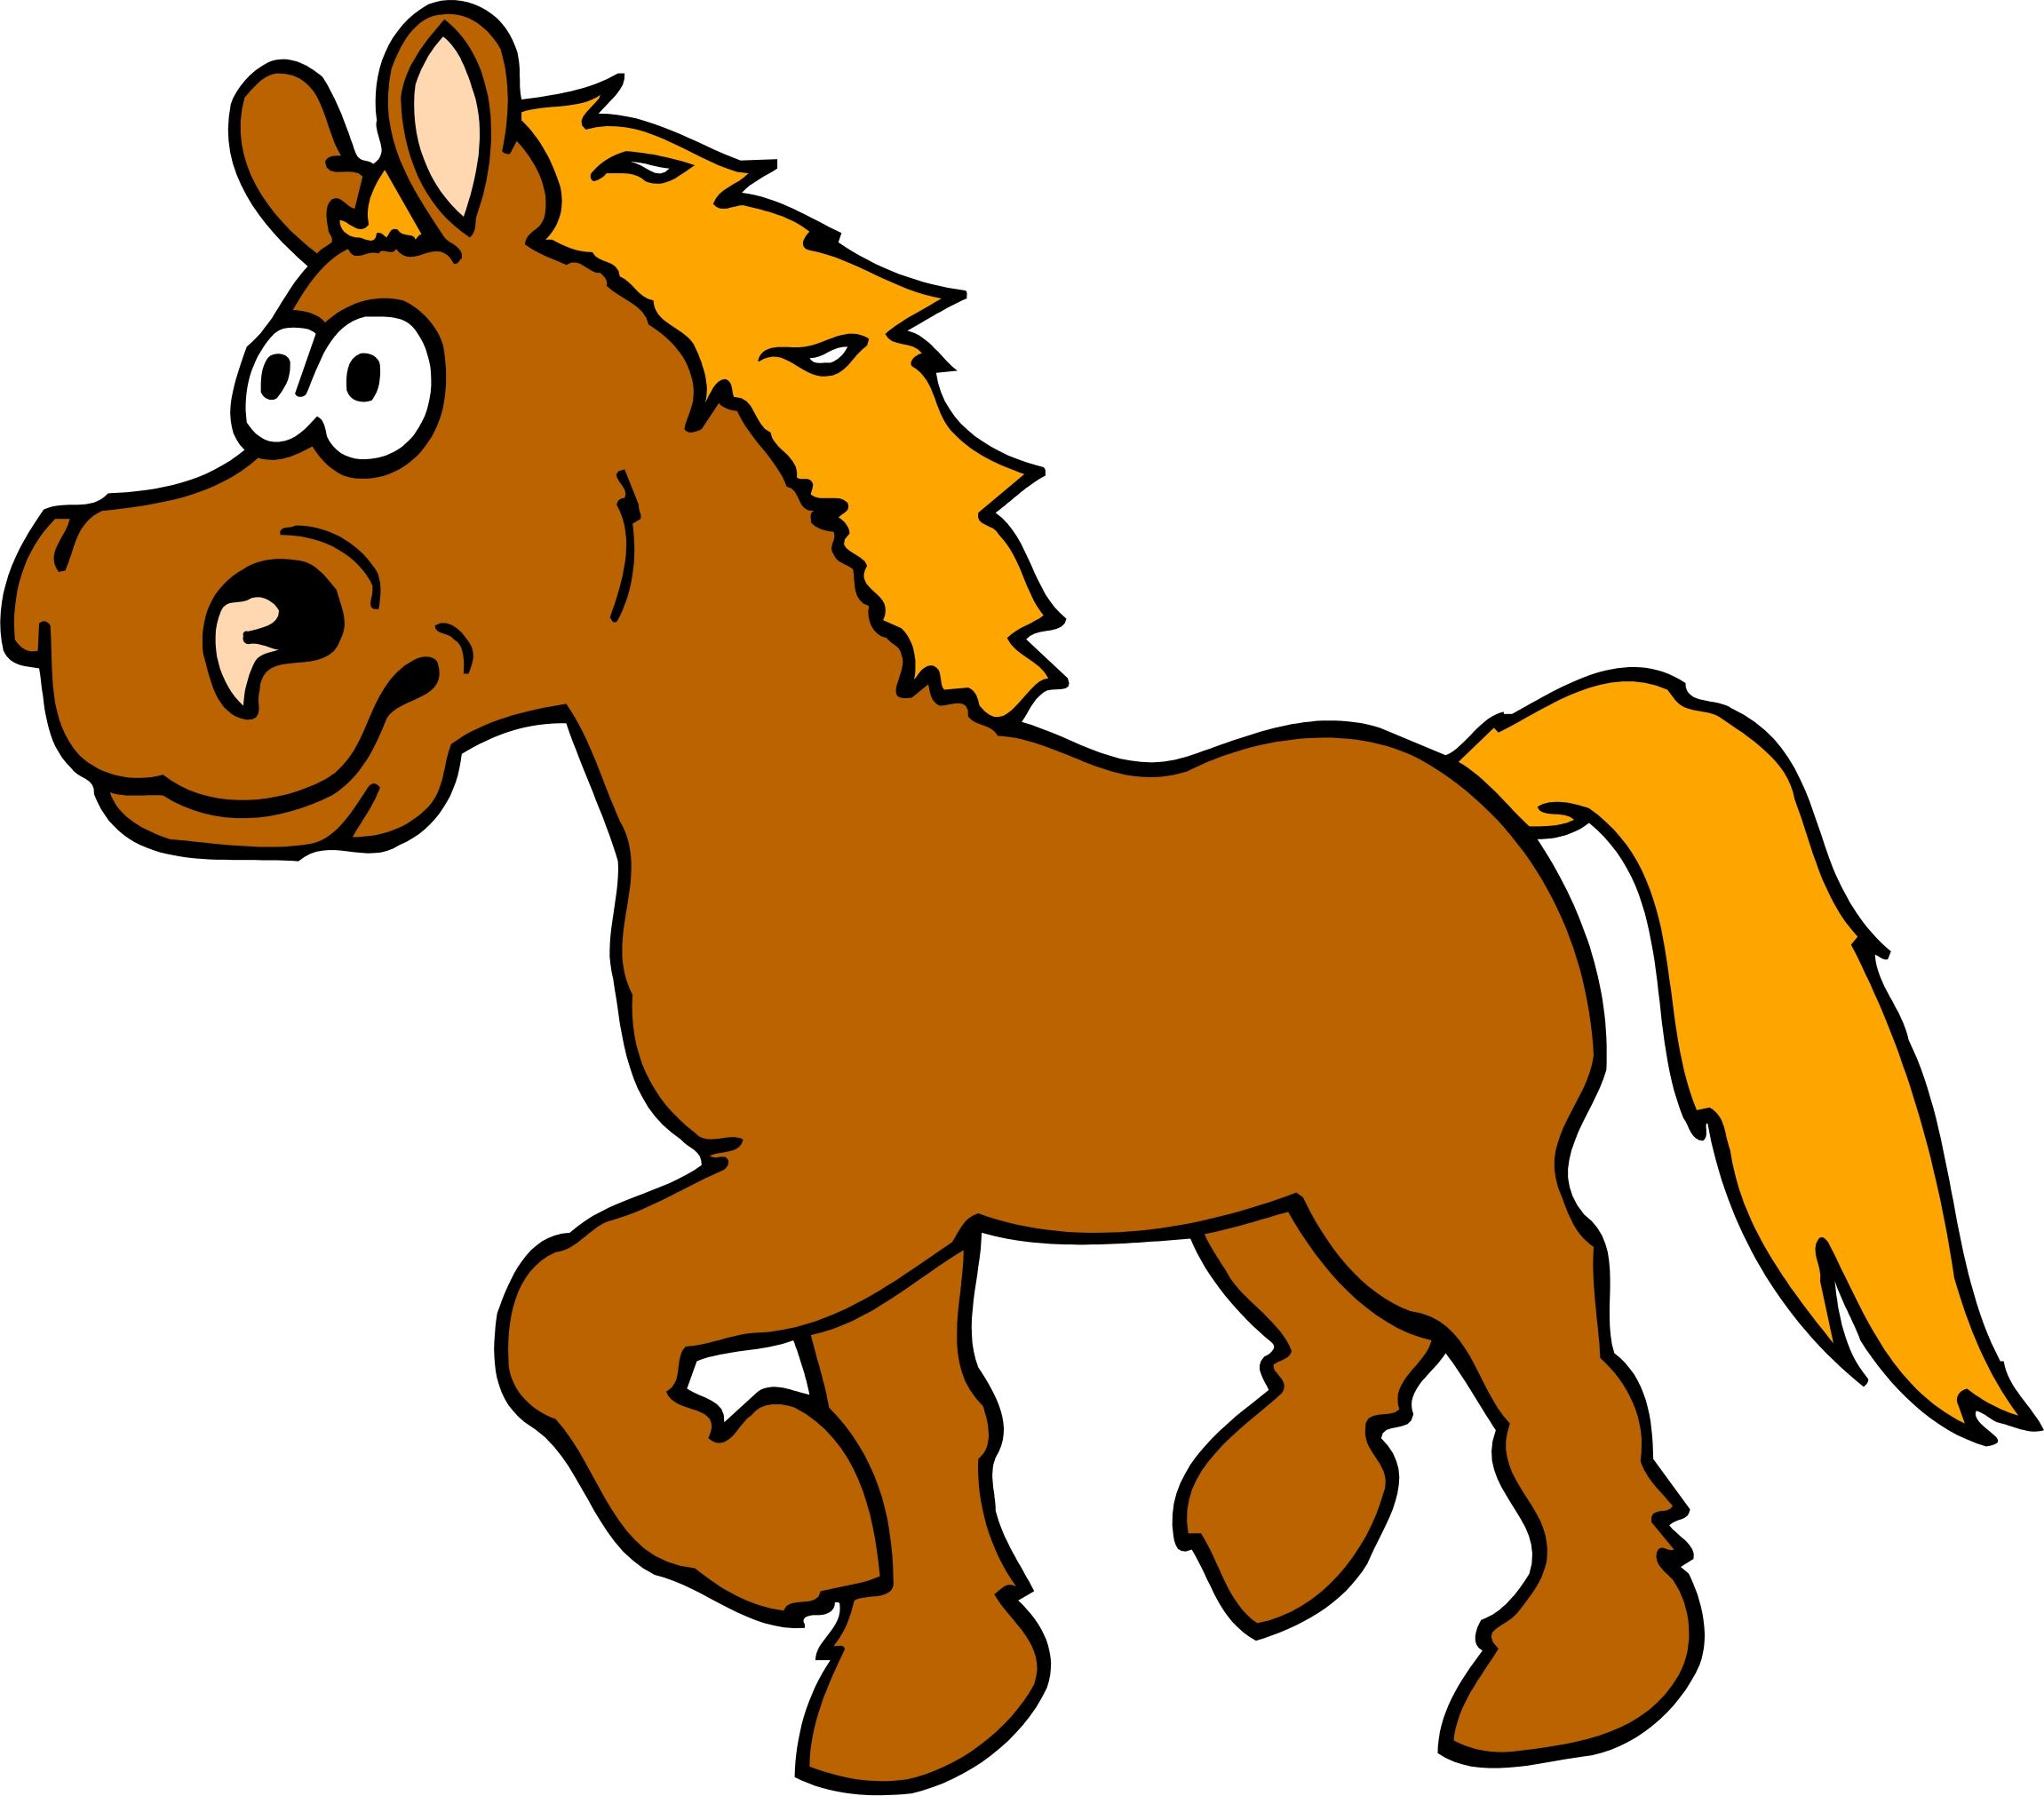 Free CARTOON IMAGES OF HORSE, Download Free Clip Art, Free Clip